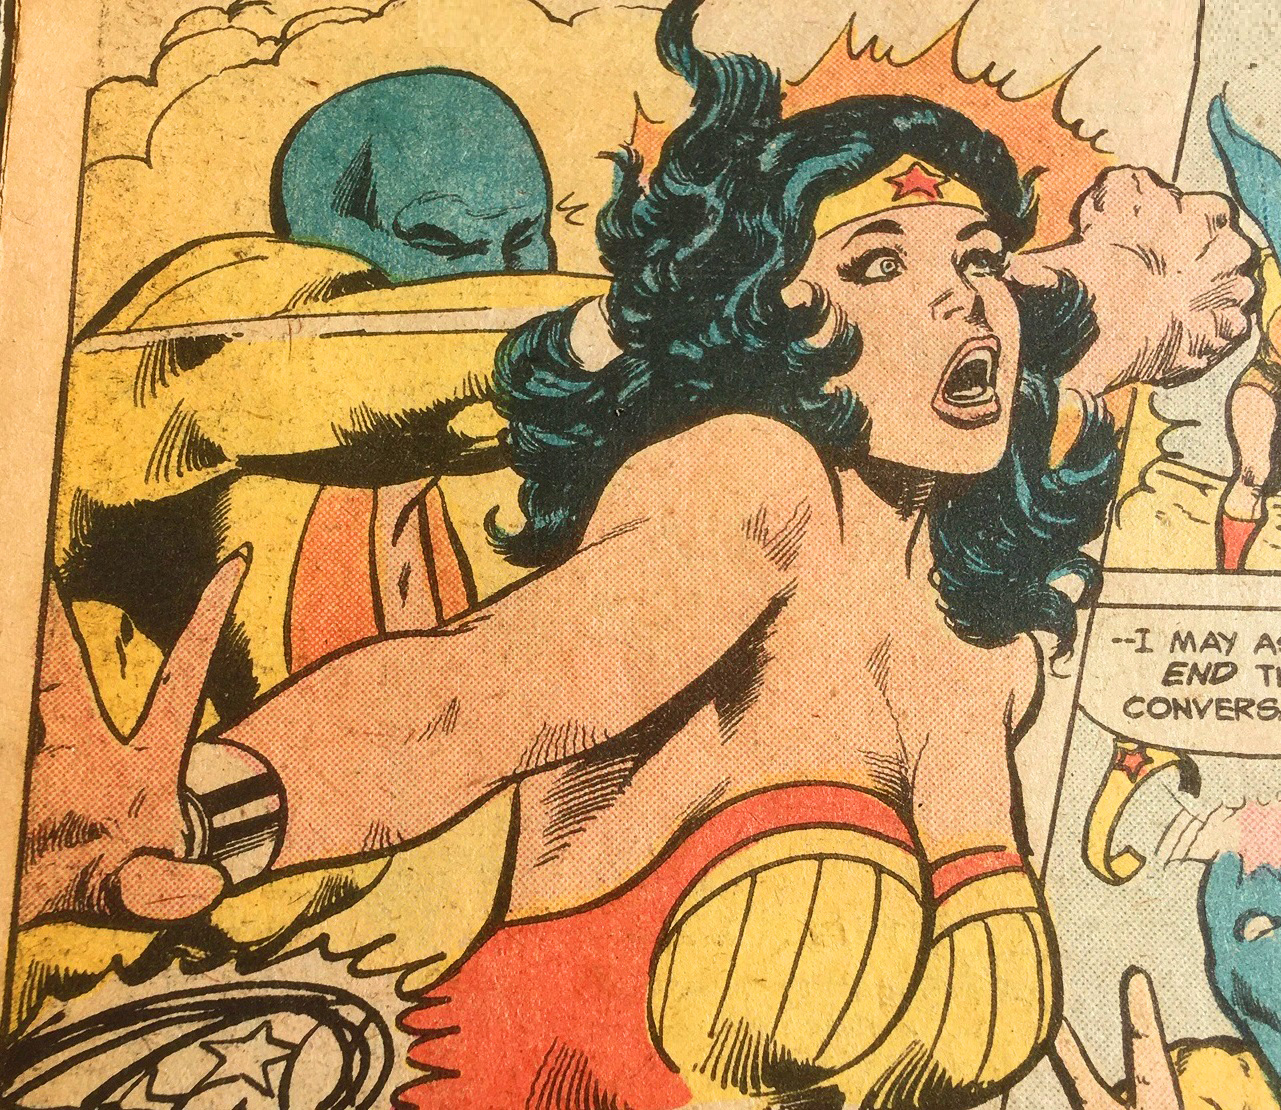 Wonder Woman 232 Art by Mike Nasser and Vince Colletta